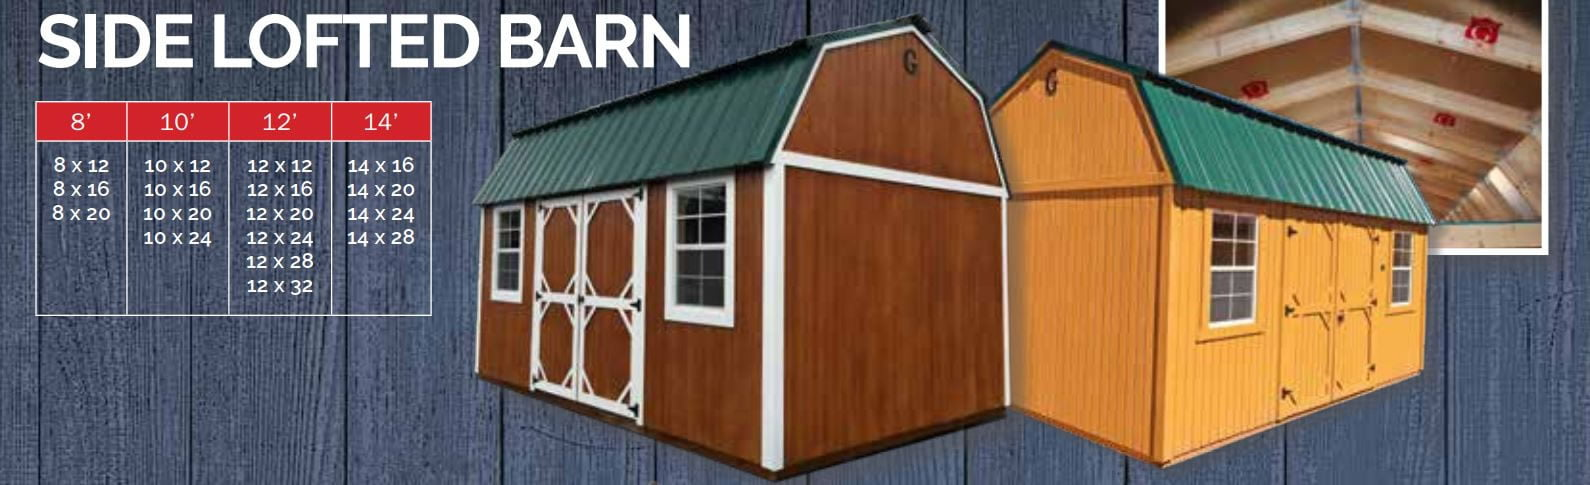 With Added More Features Than The Lofted Barn The Side Lofted Barn Seeks To Pleasure All Your Storage Needs